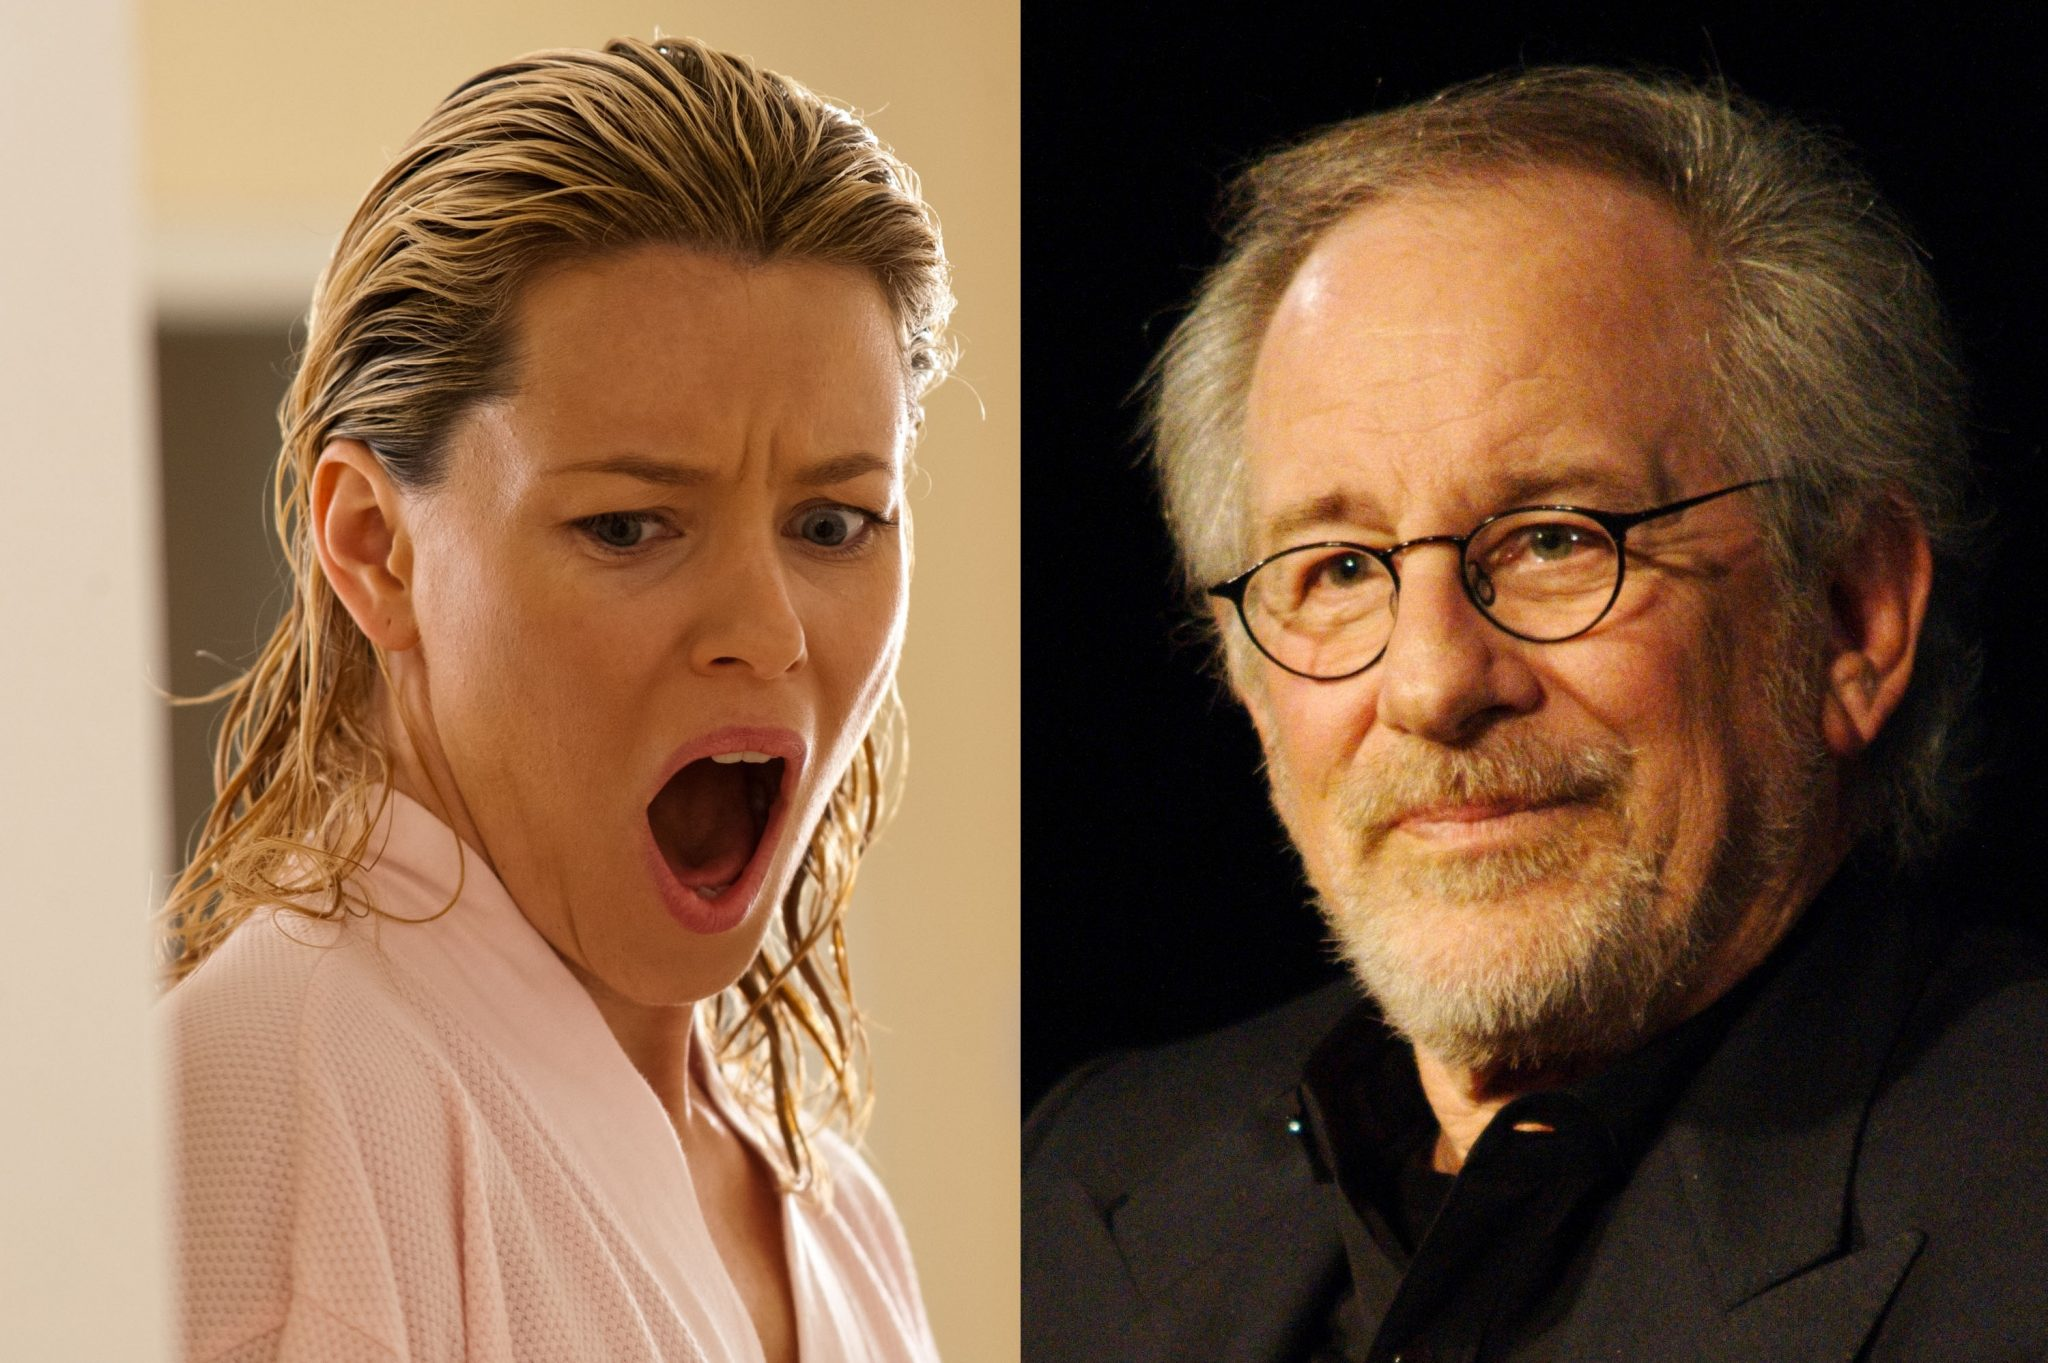 Elizabeth Banks rips Steven Spielberg for not directing female movies